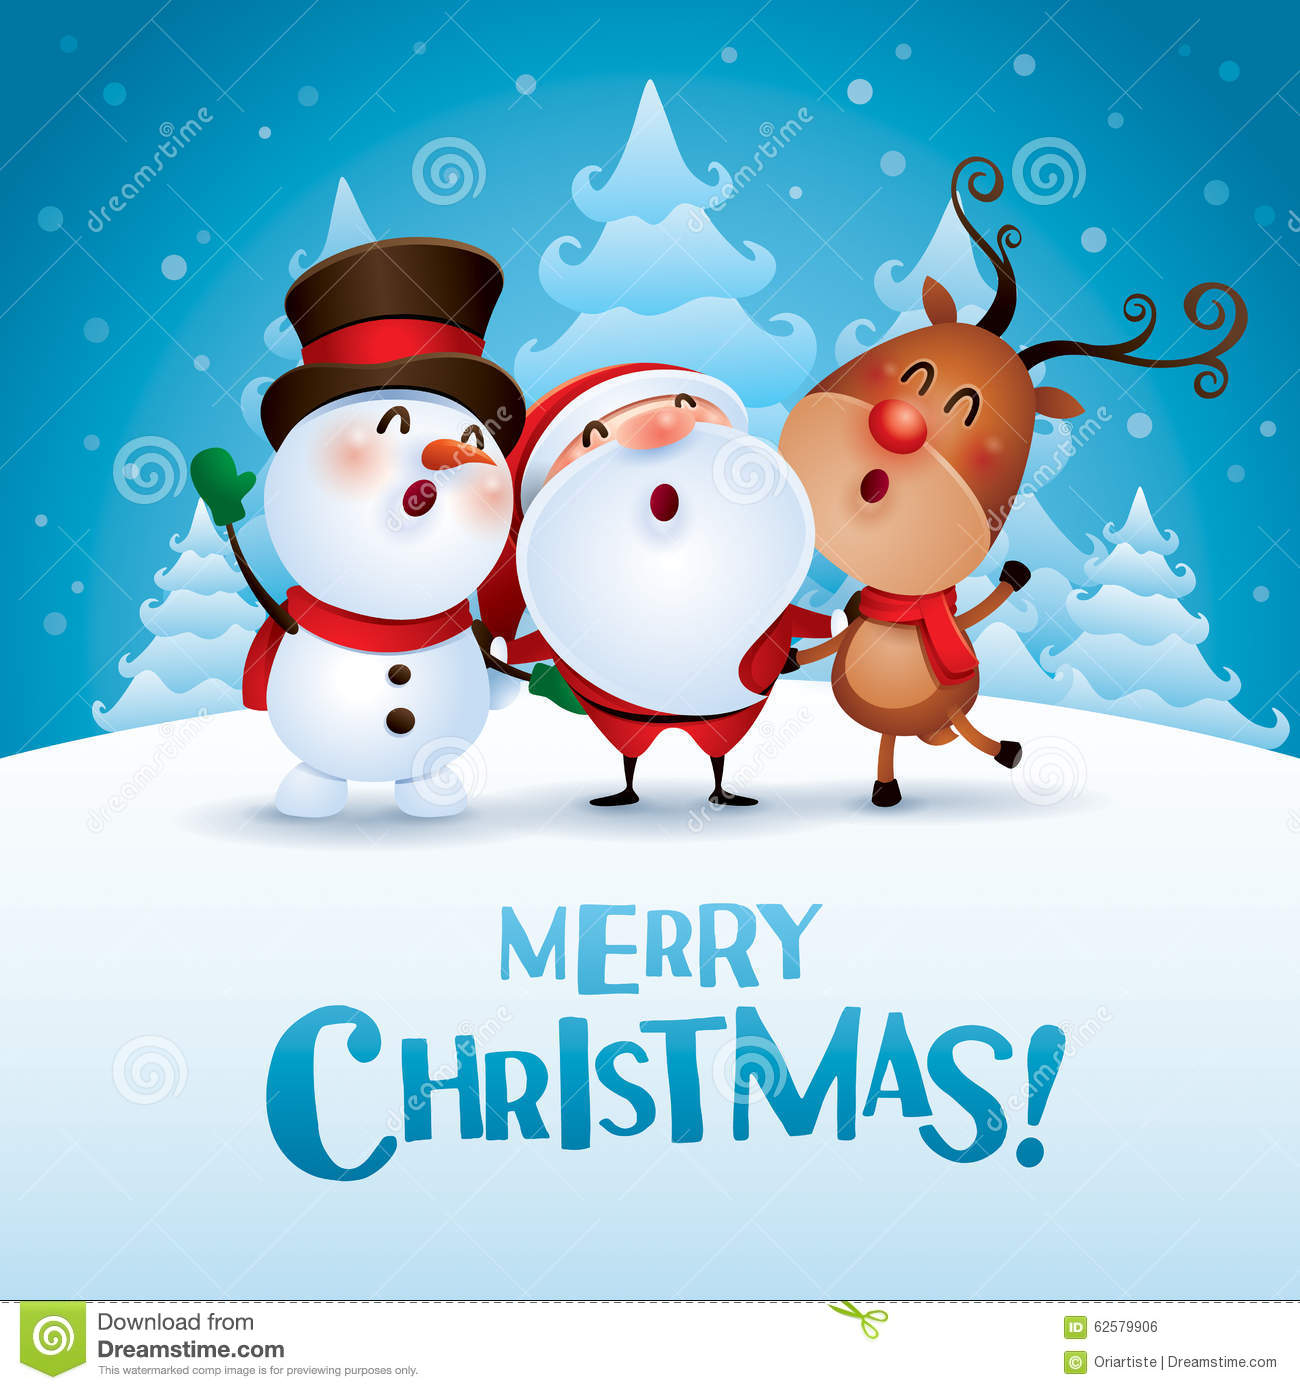 Merry Christmas! Happy Christmas Companions. Stock Vector ...